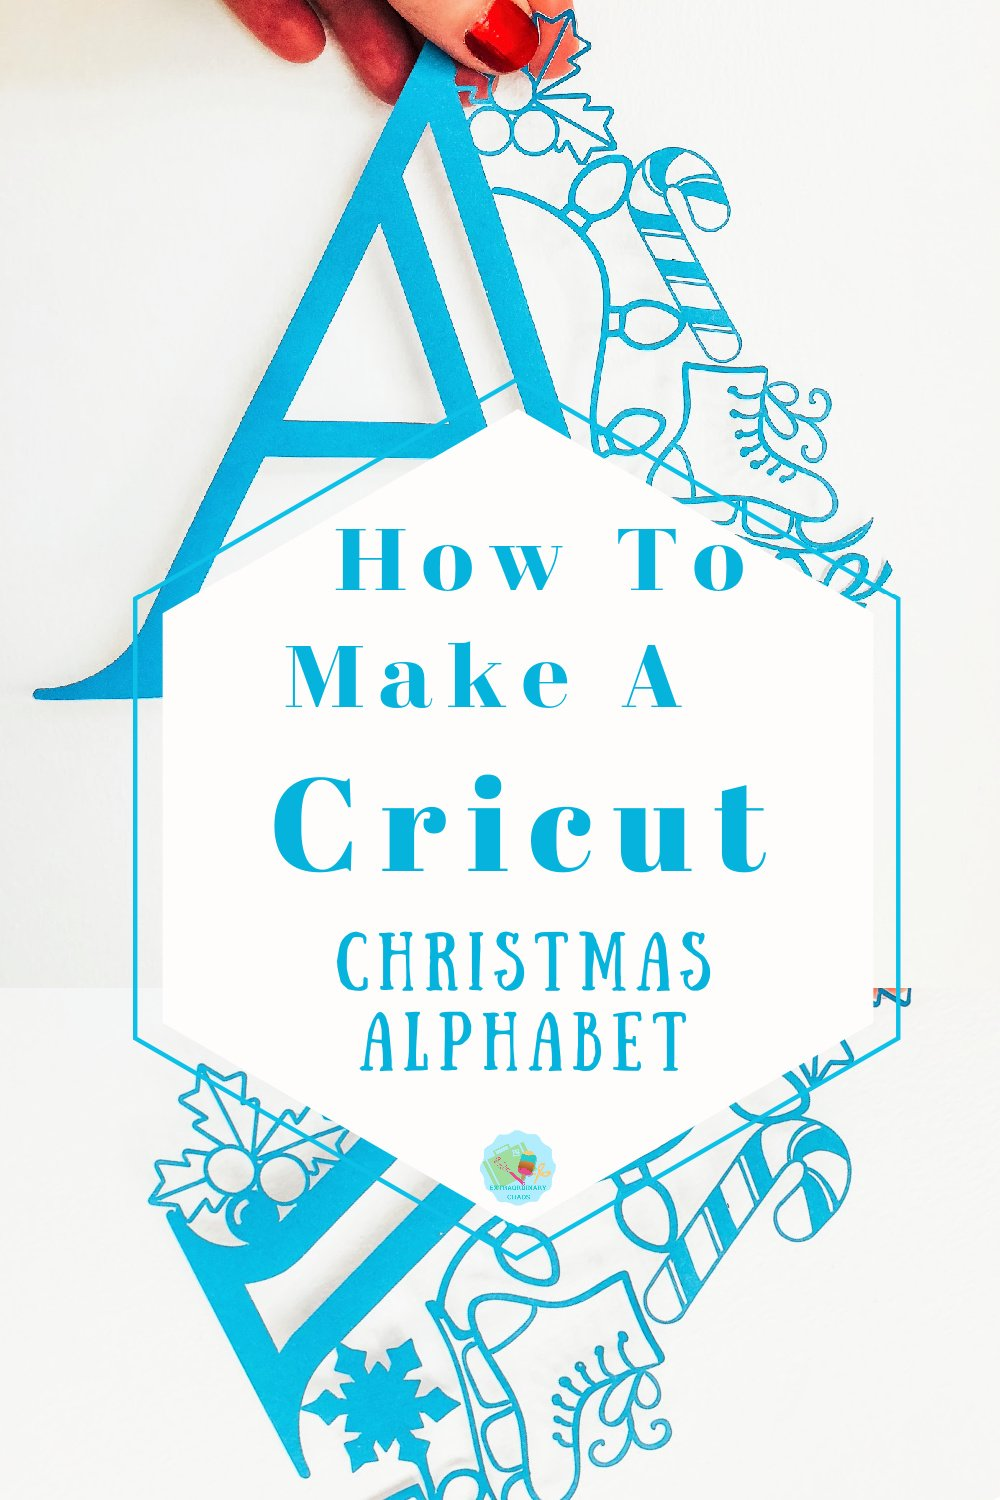 How to make a Cricut Christmas Alphabet in Cricut Design Space